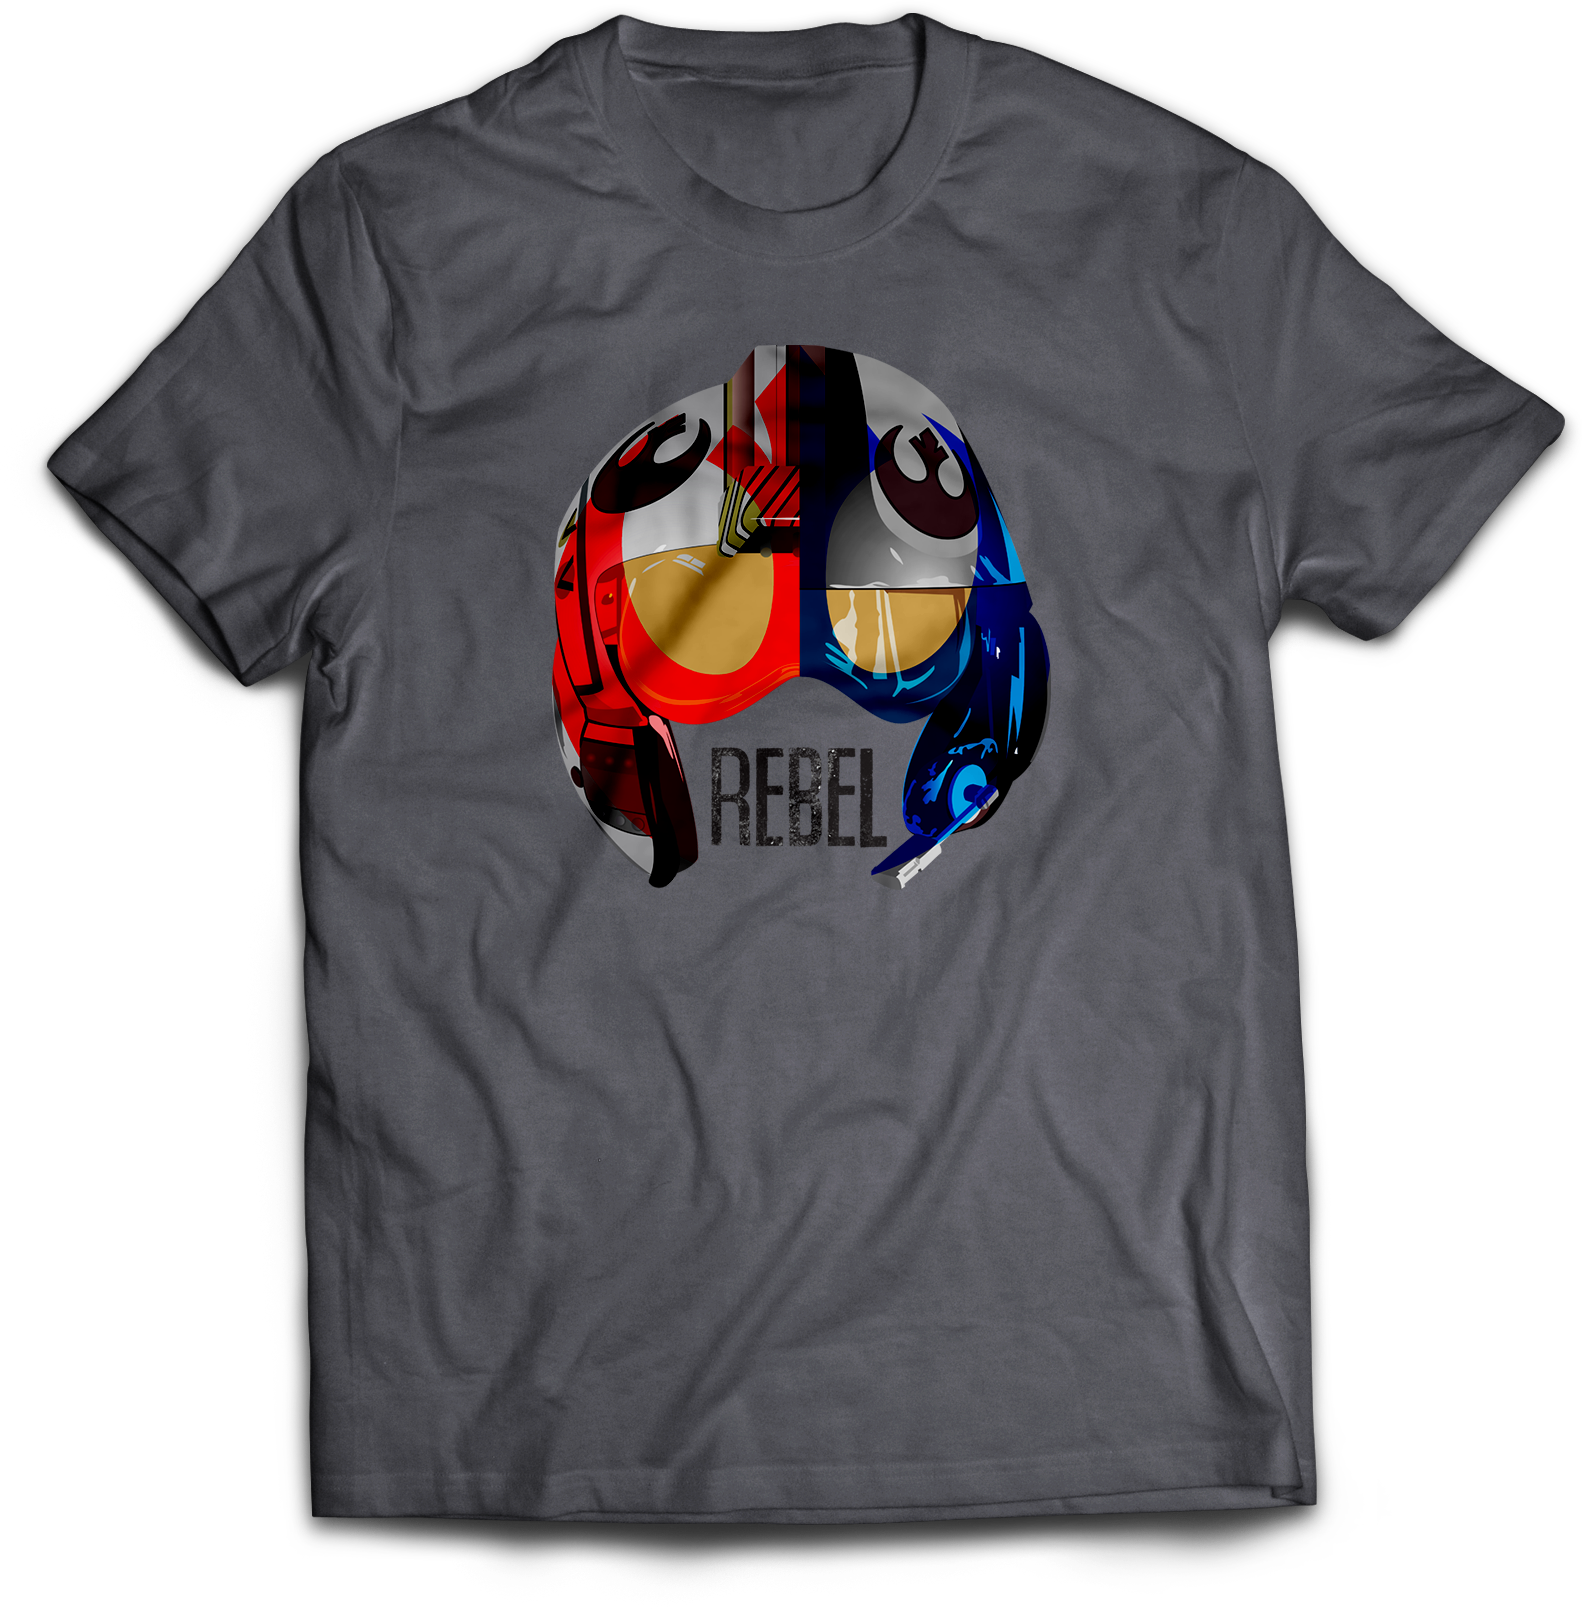 Old Rebel New Resistance x-wing helmet T-shirt Jlane Design Teepublic